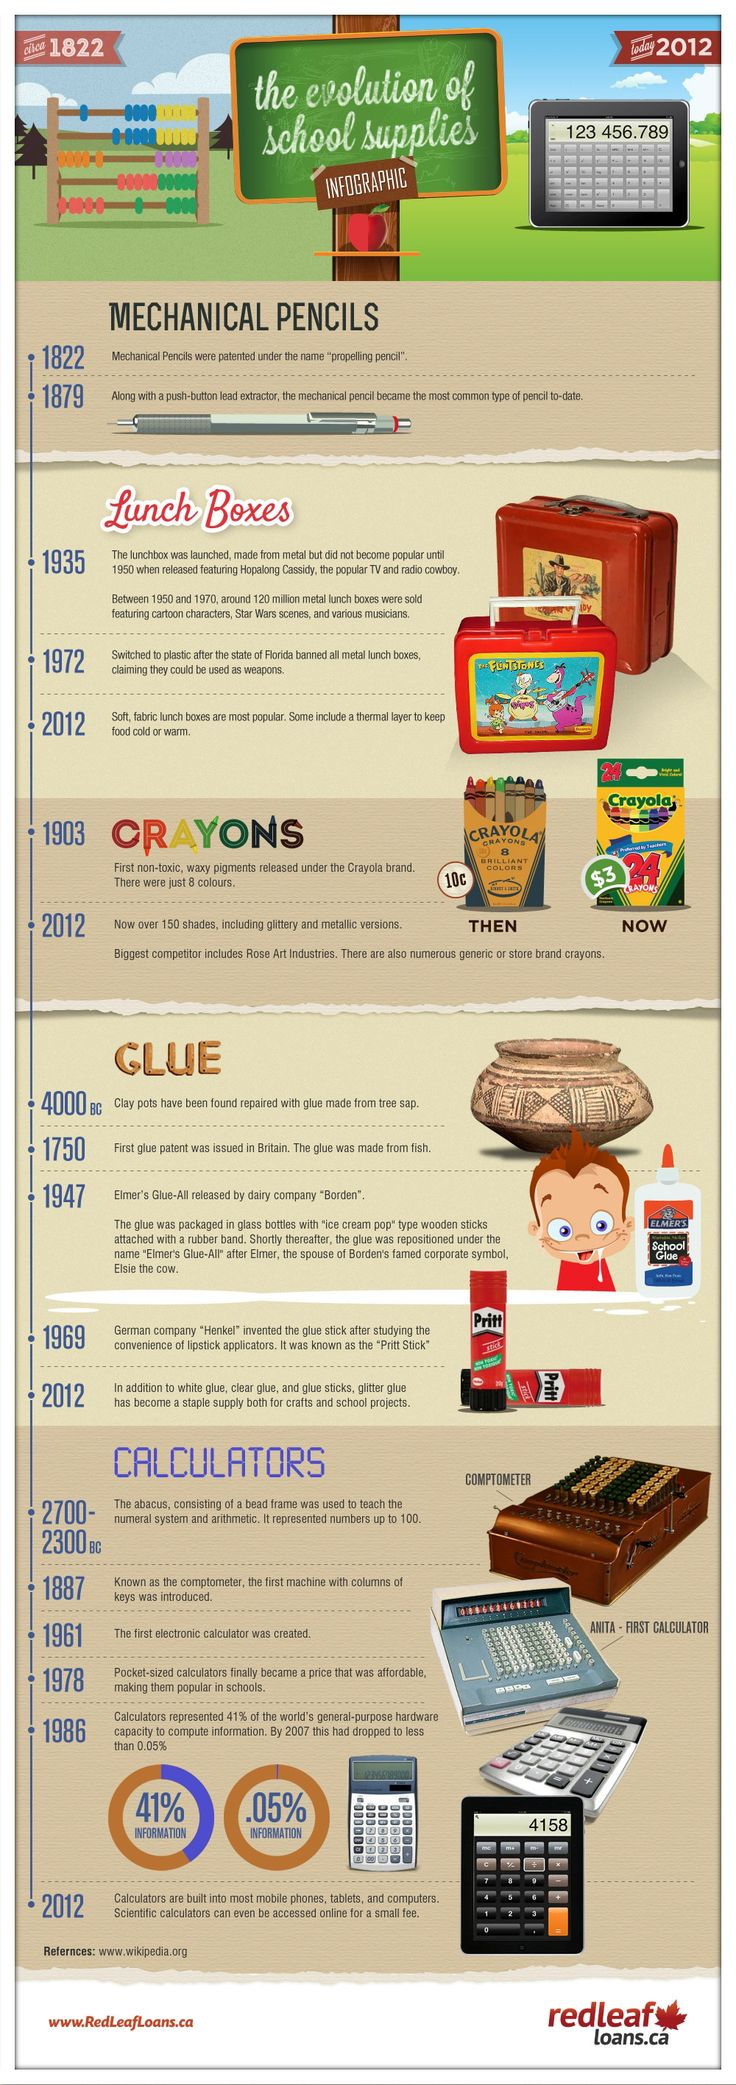 The Evolution of School Supplies [INFOGRAPHIC] @mrhooker: Facts About Schools, Evolution Schools, Infographic Education, Back To Schools, Supplies Infographic, Schools Supplies, Education Infographic, Fun Facts, Interesting Facts